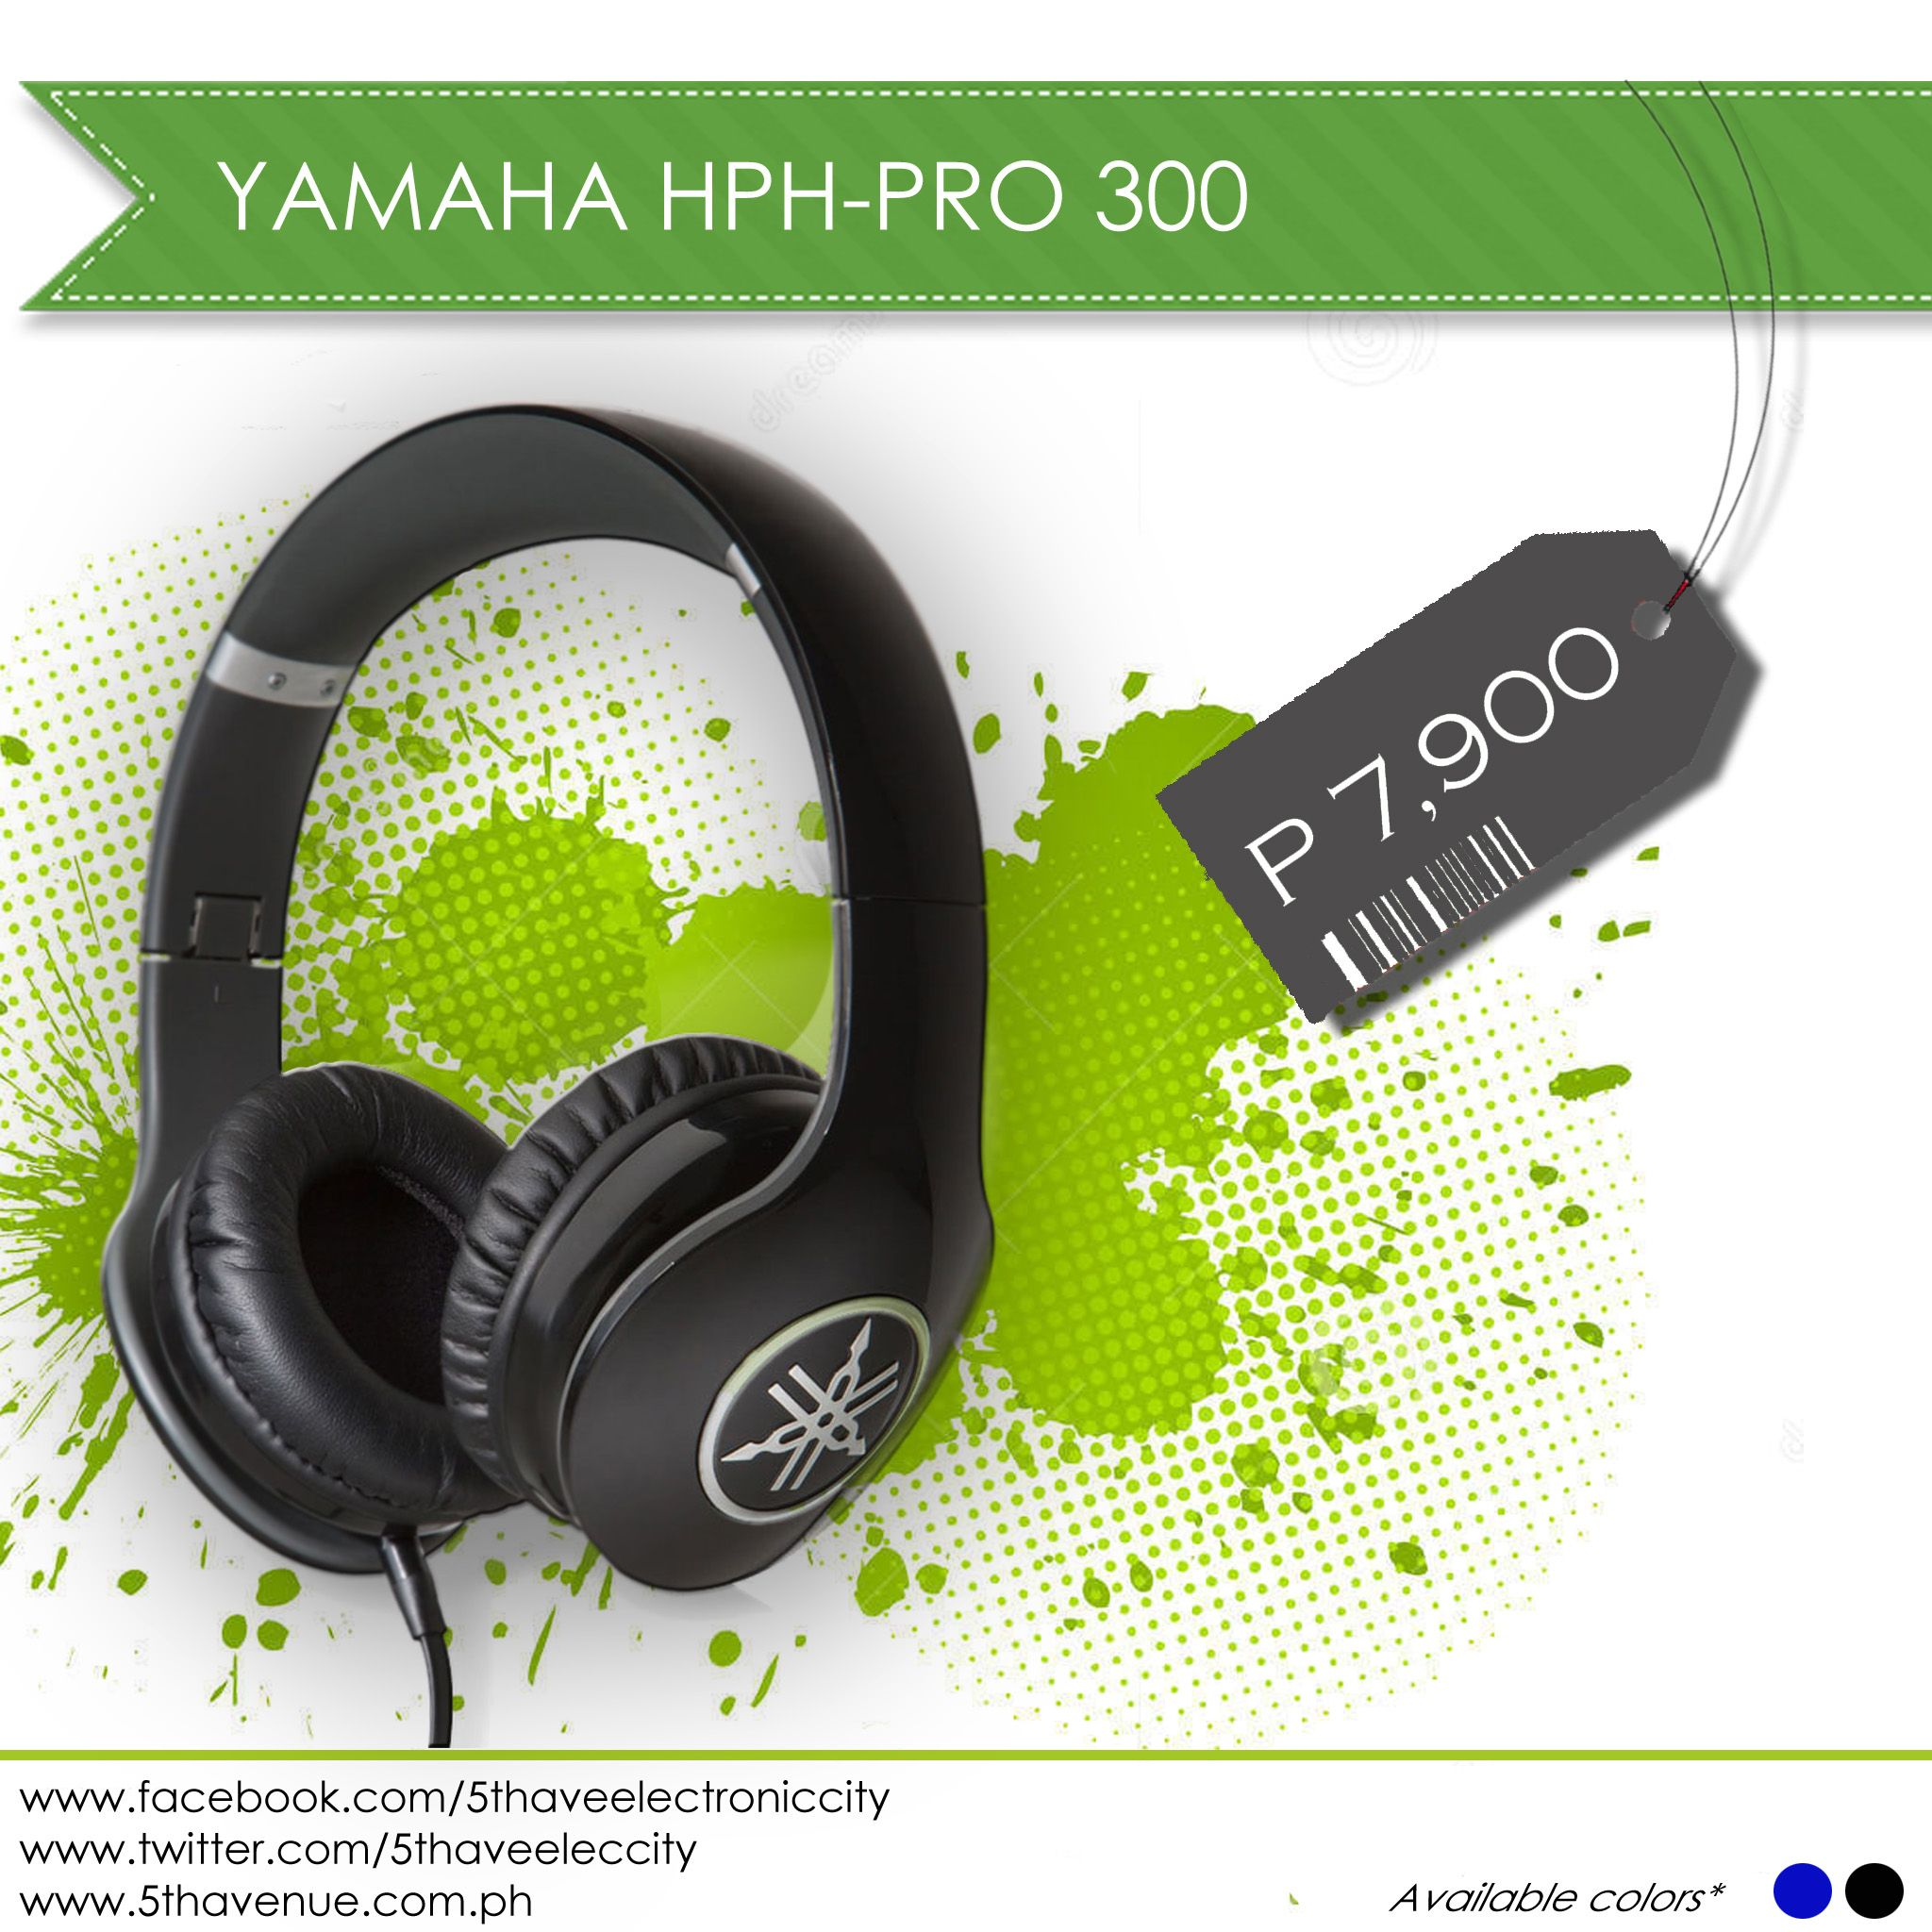 Limited Edition Yahama Hph Pro 300 For Only P790000 Click The